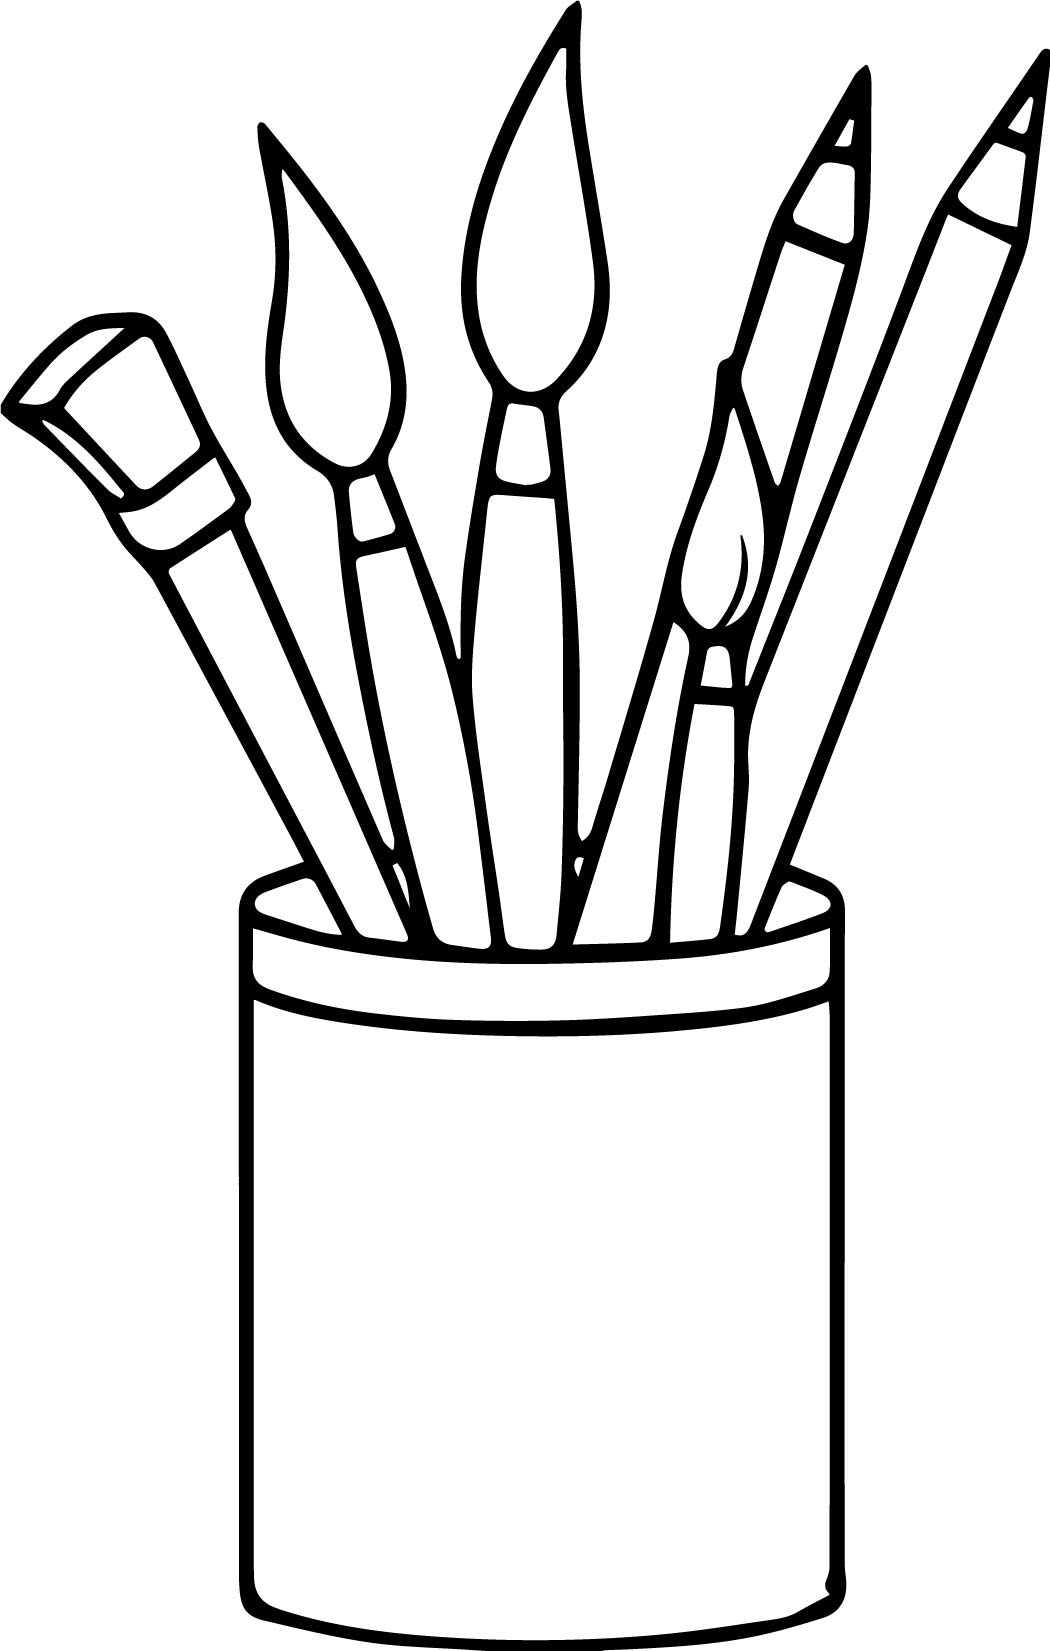 Art Supplies Pencils Paint Brushes Coloring Page